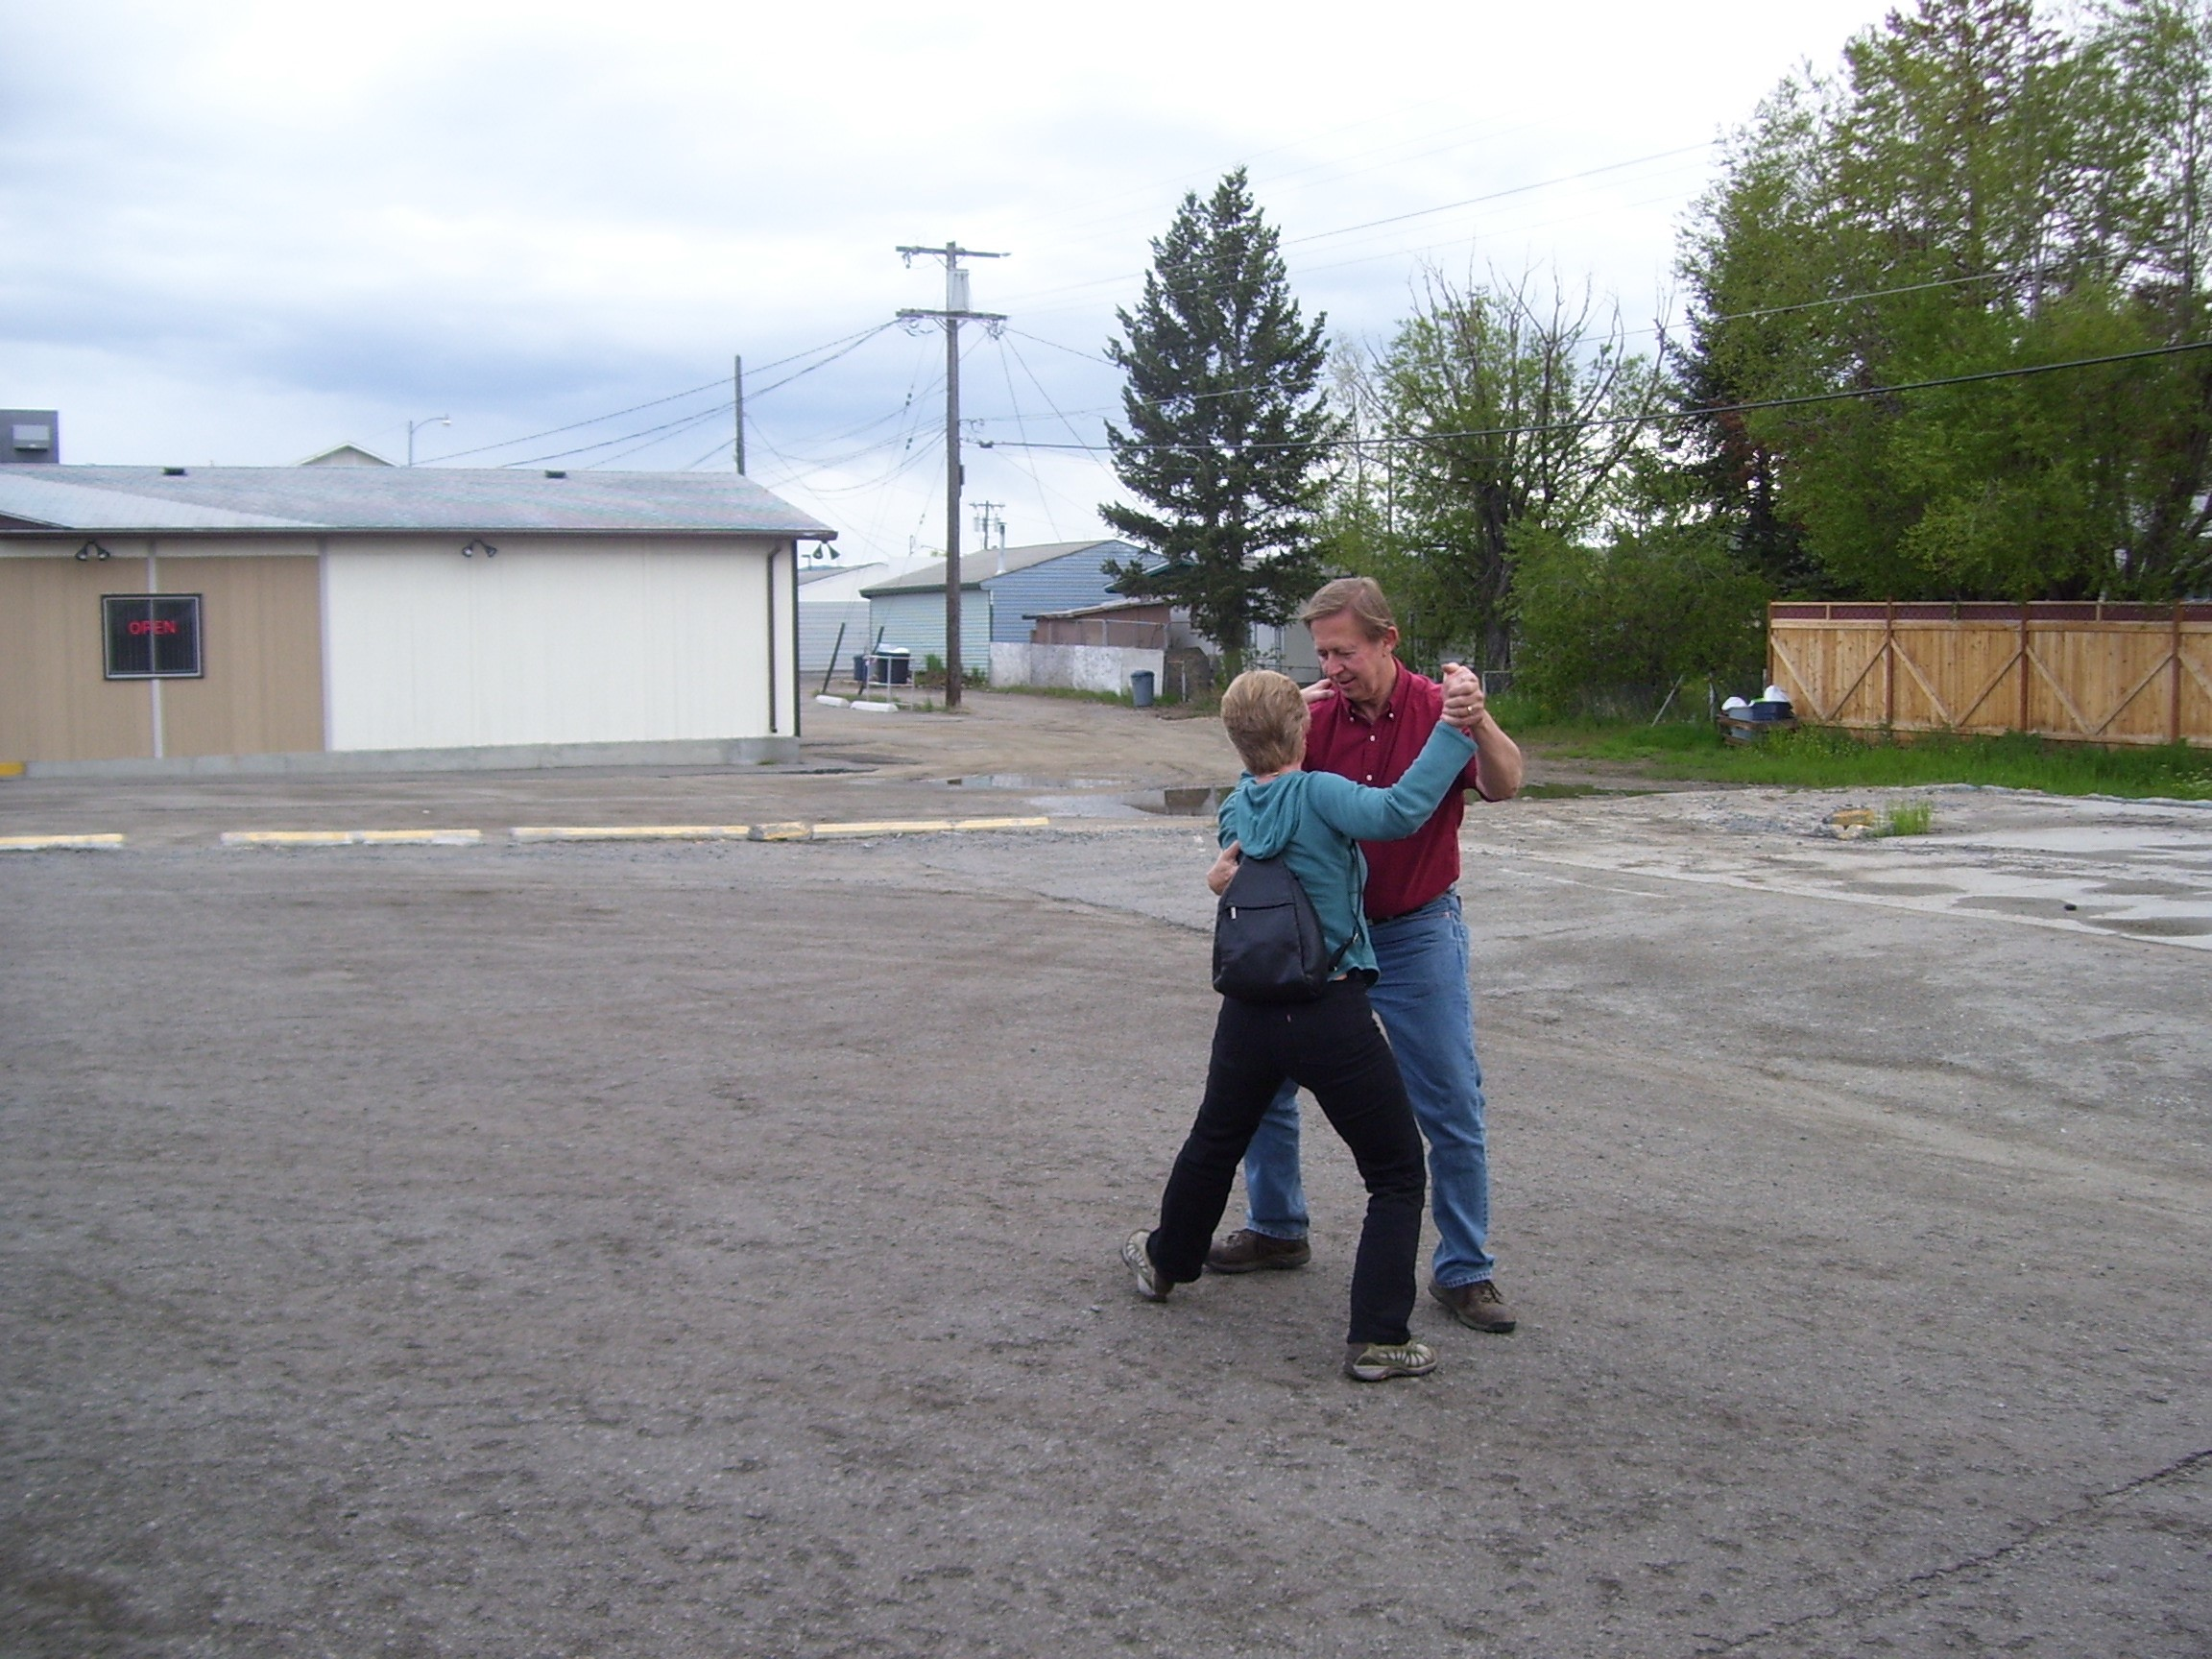 Alison and David Maslanka dancing outside in June 2008, somewhere in Wyoming